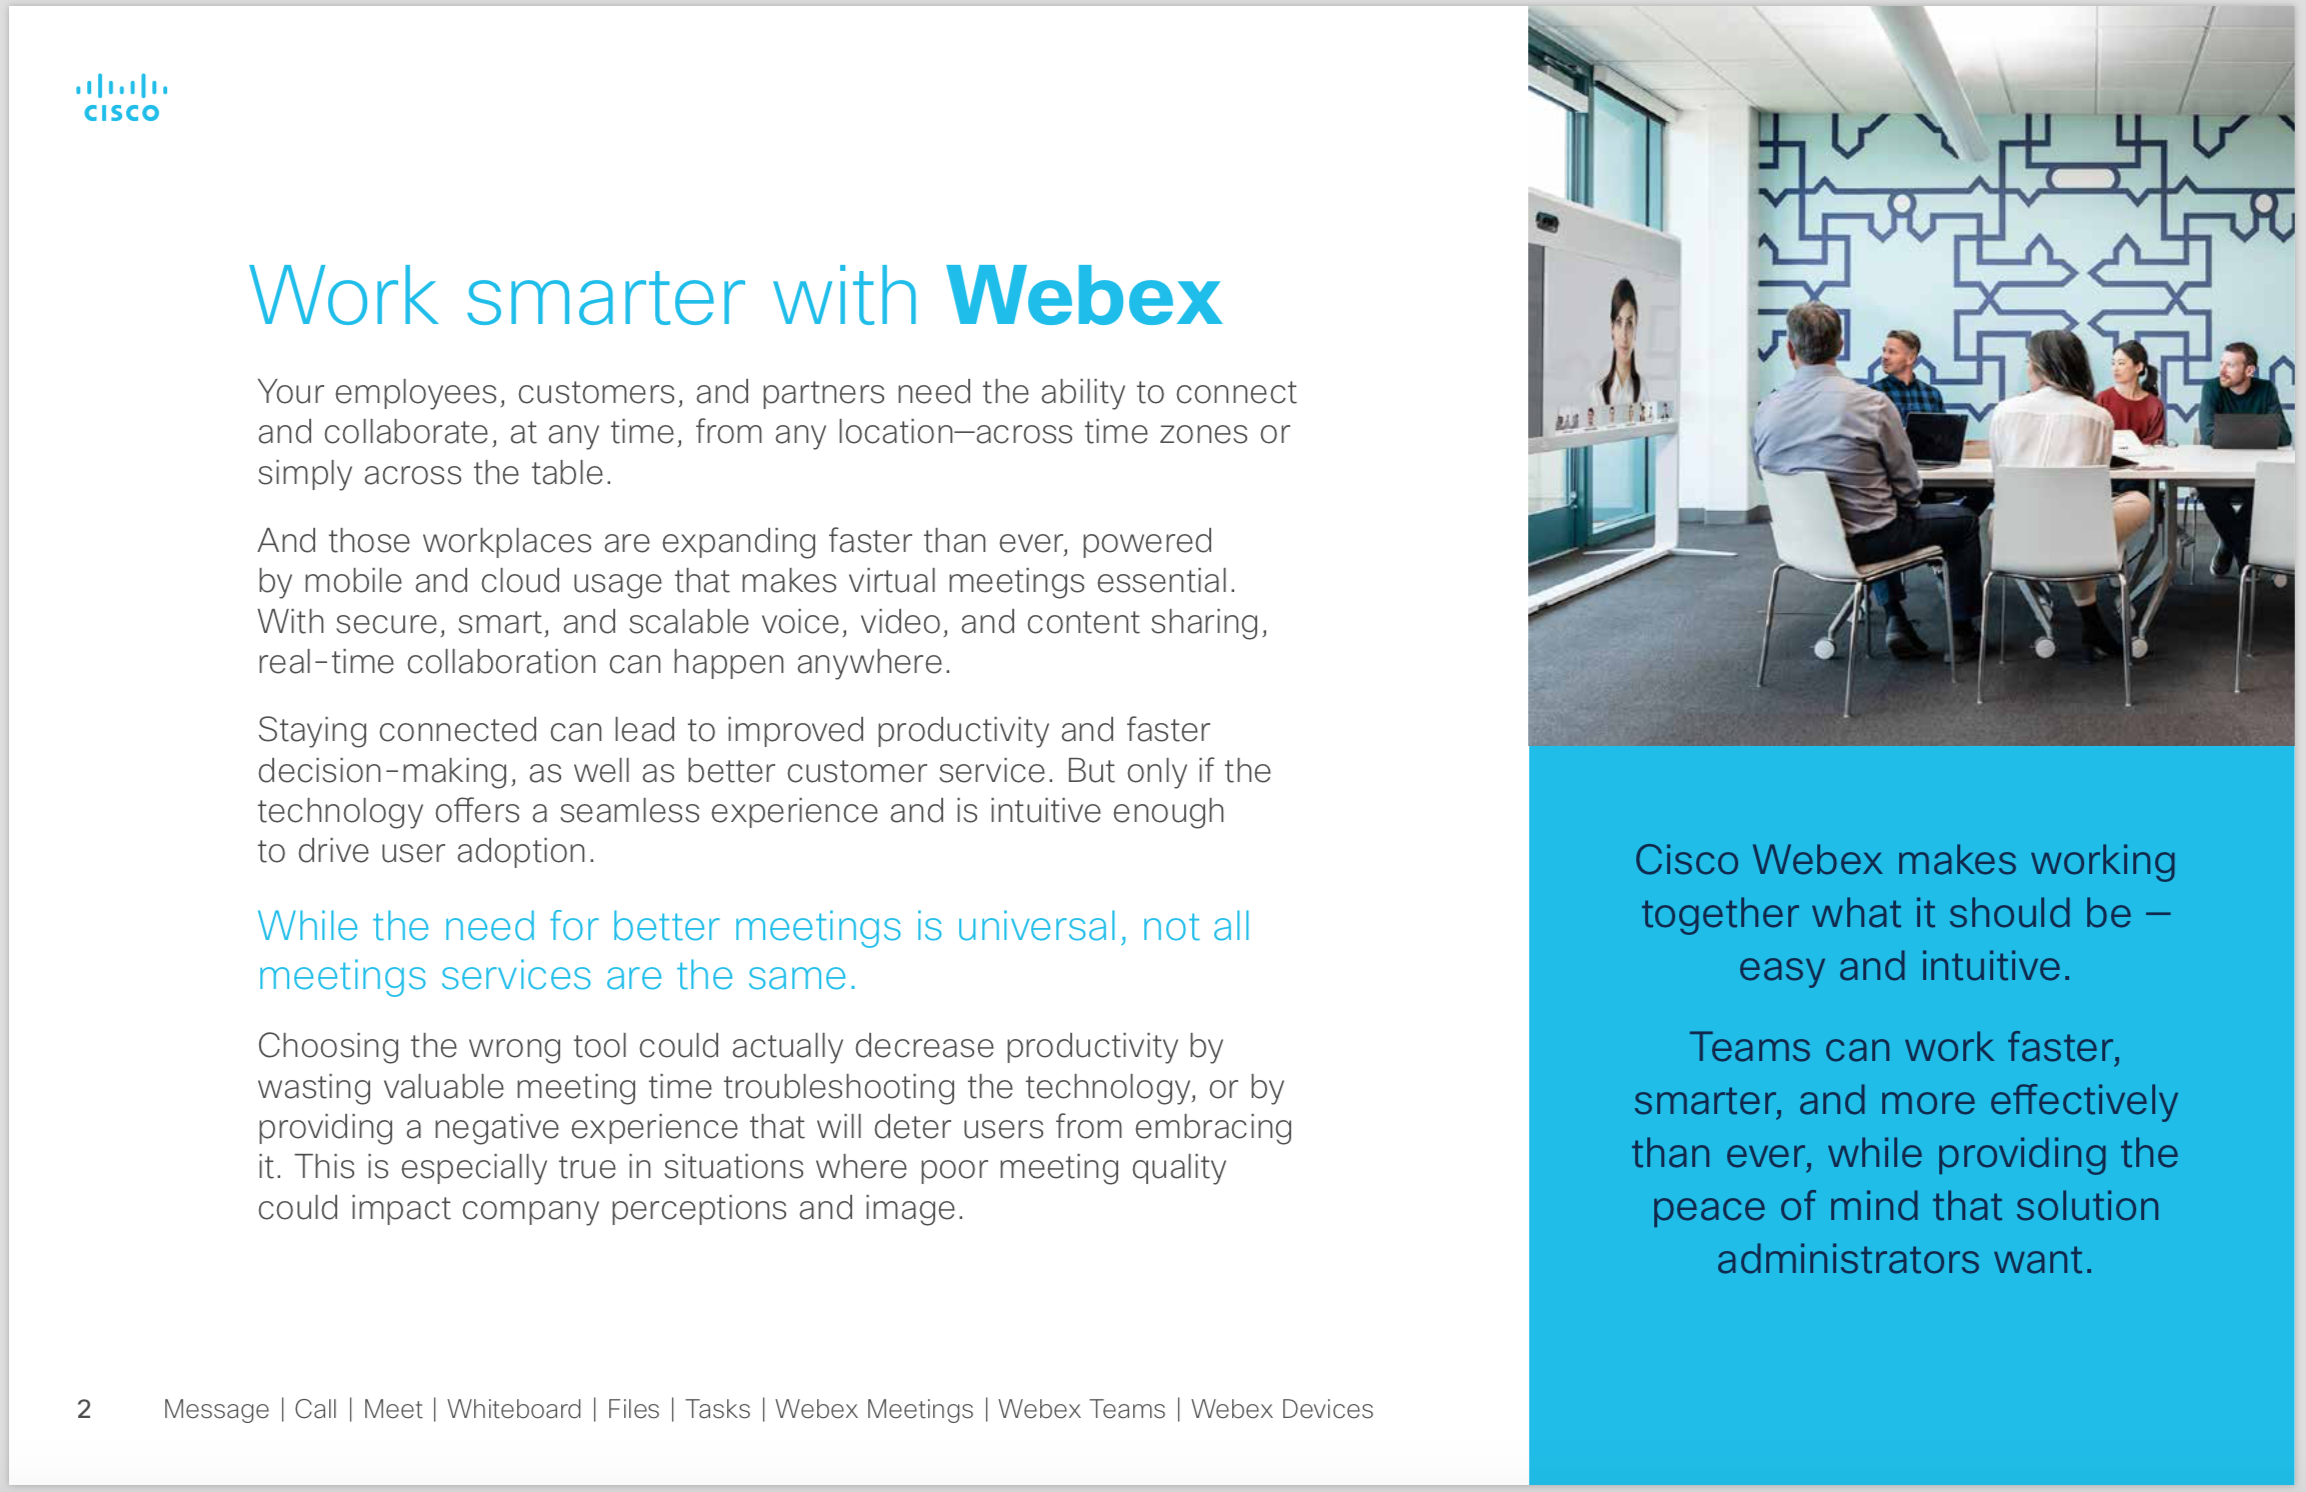 Cisco Webex 5 Reasons 2